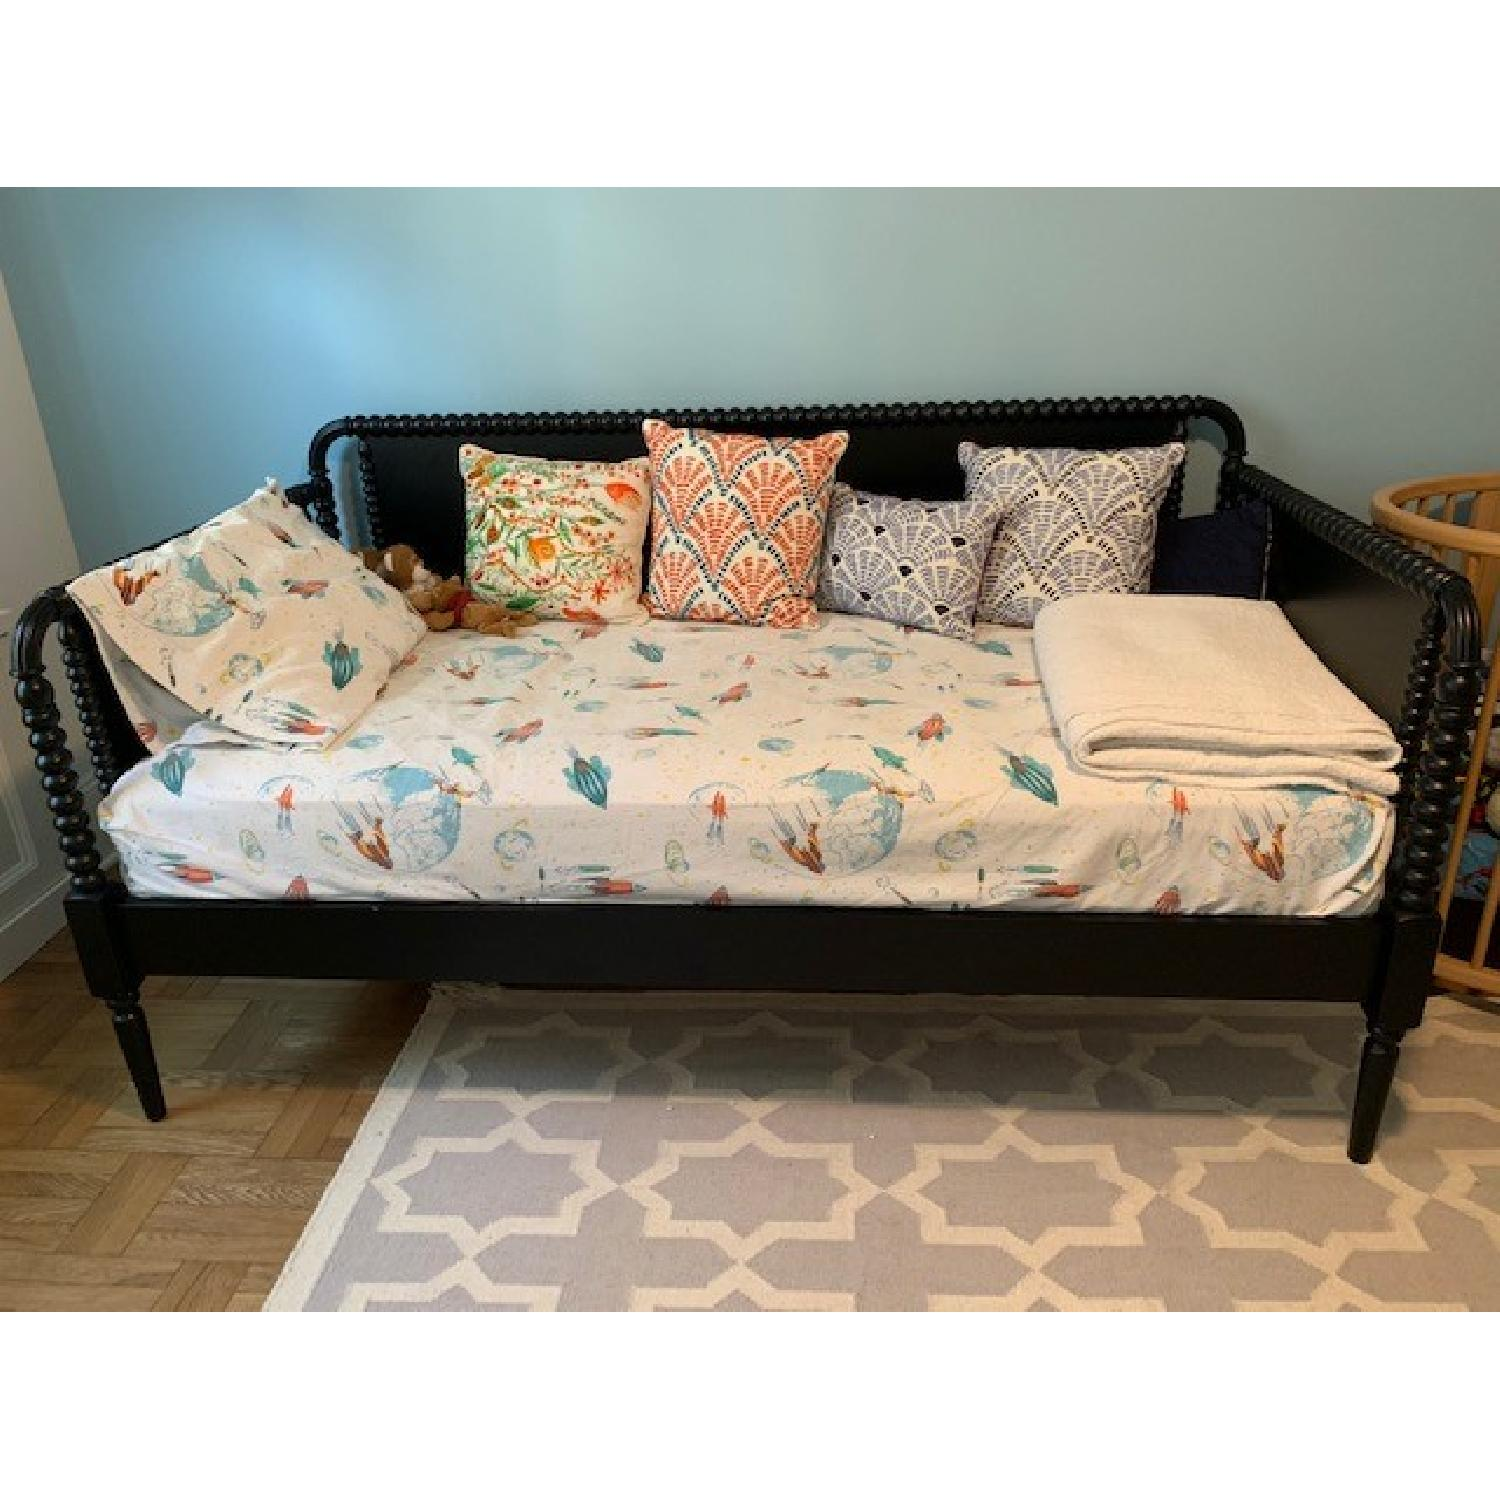 Magnificent Crate Barrel Jenny Lind Twin Daybed Aptdeco Ibusinesslaw Wood Chair Design Ideas Ibusinesslaworg